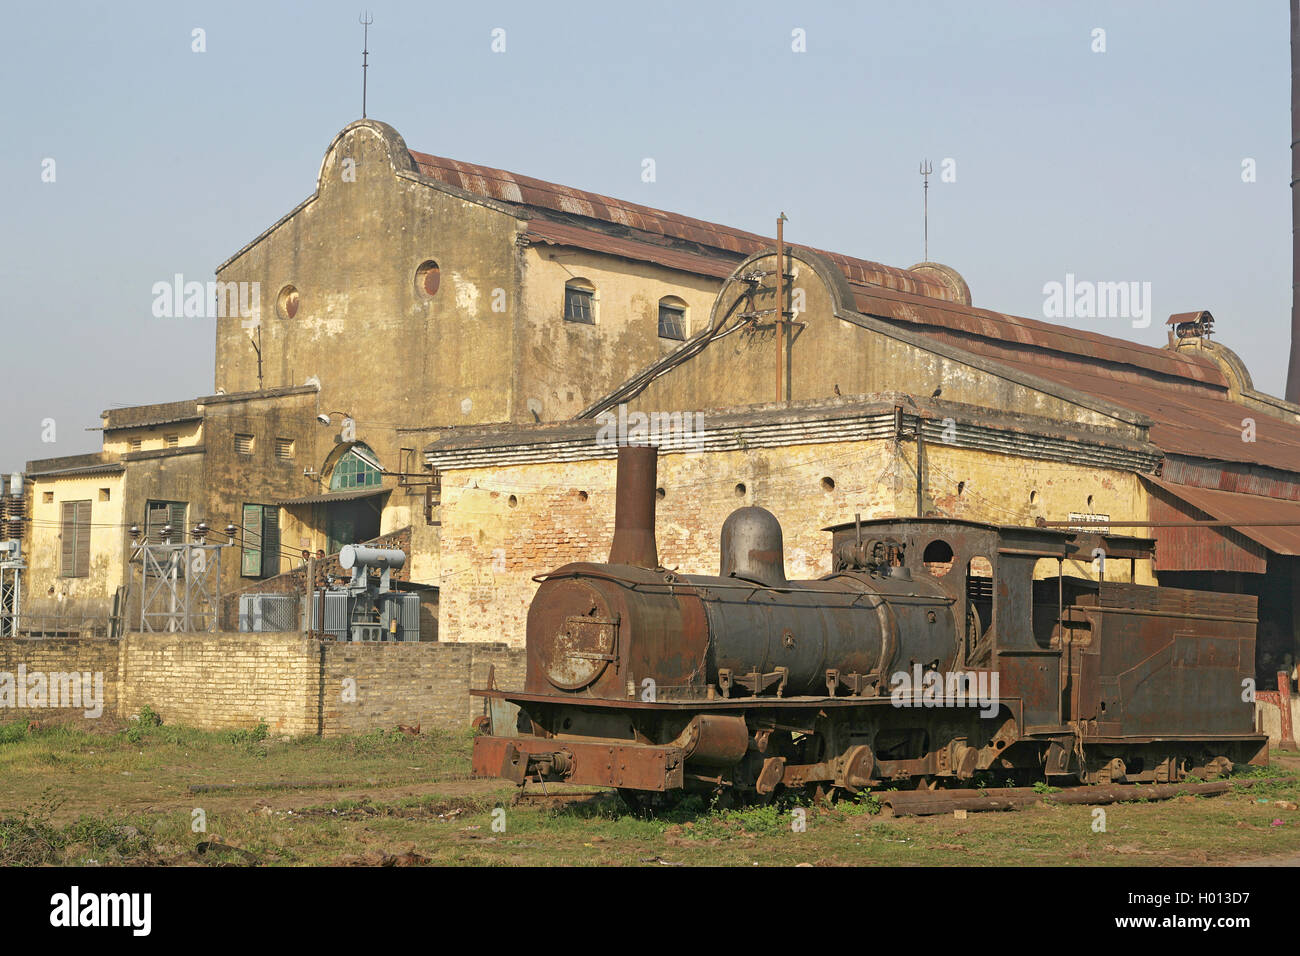 Rameshwara Jute Mill with its F Class lying abandoned in the factory yard, March 2007. - Stock Image